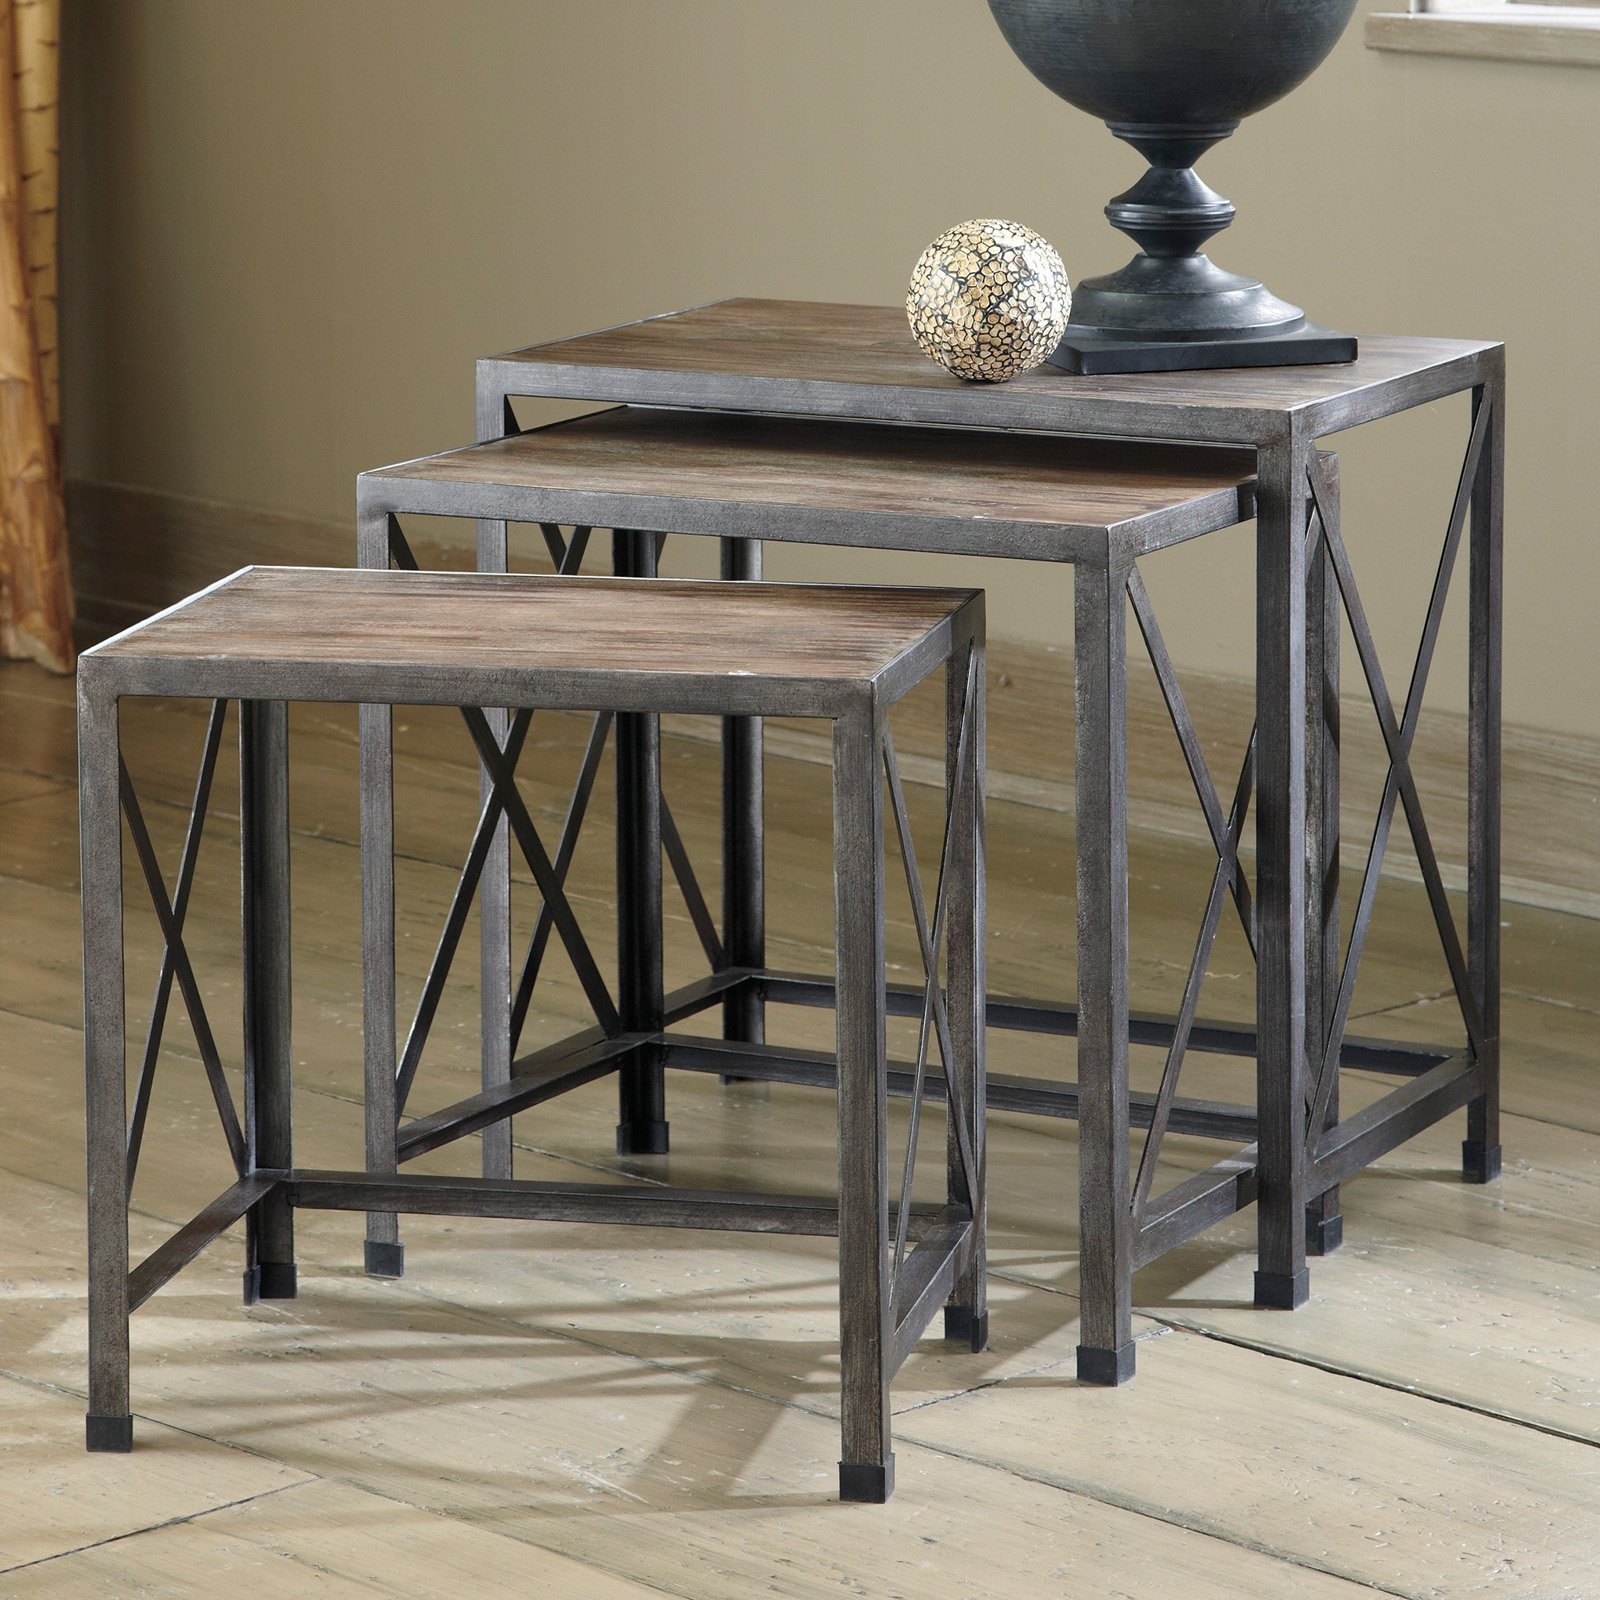 nesting accent tables round signature design ashley rustic accents graybrown knurl table dorm room ideas dining winsome with drawer and cabinet silver bedside bassett end gourd